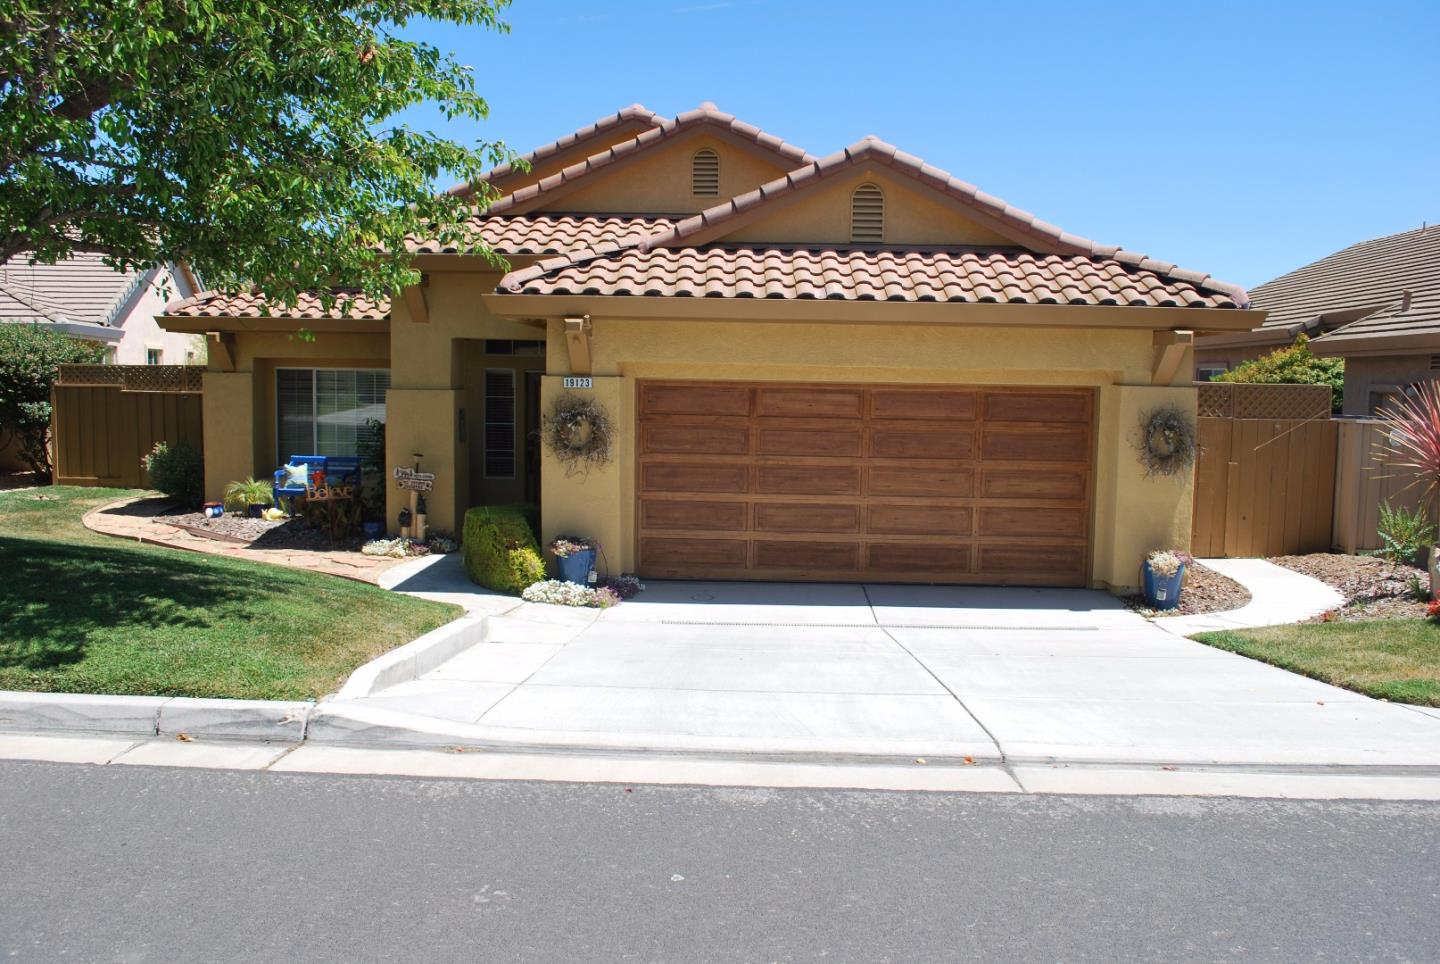 19123 Garden Valley Way, Salinas, CA 93908 - 3 Beds | 2 Baths (Sold ...